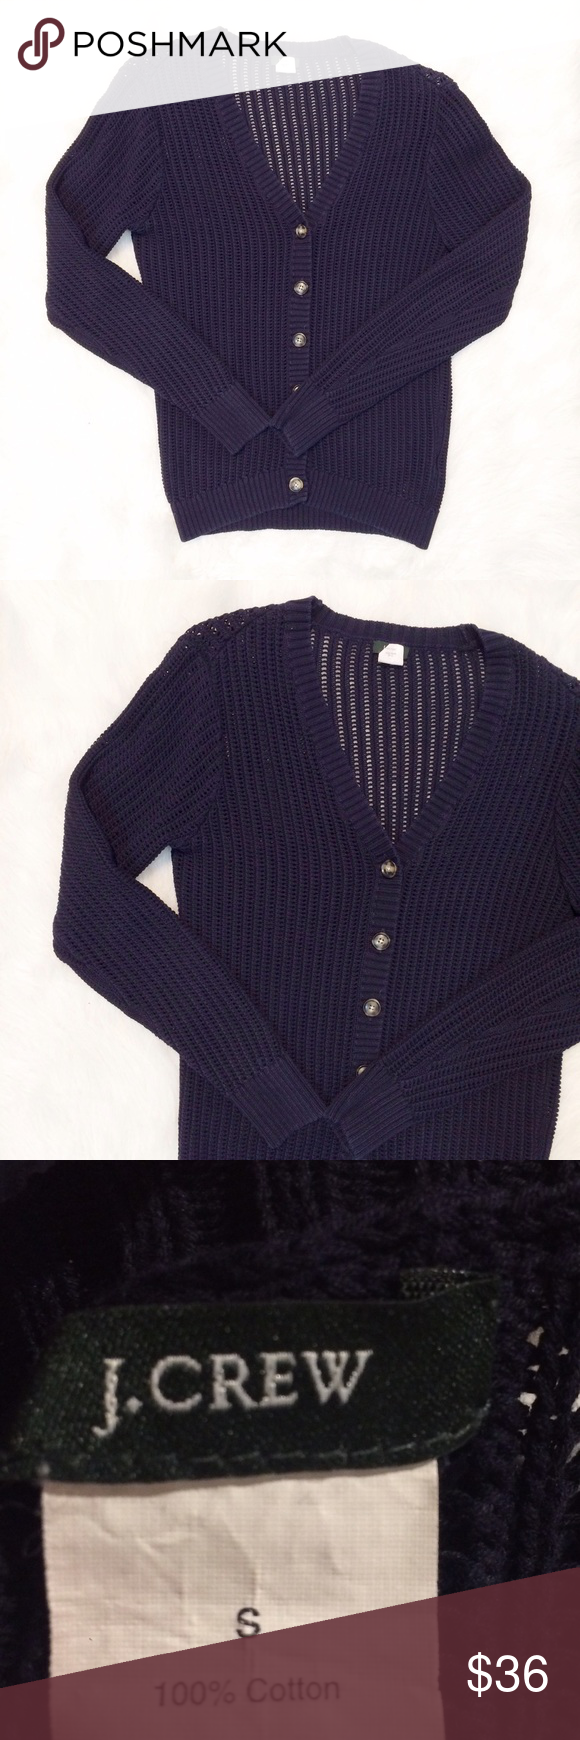 J. Crew cotton Cardigan Button front Cardigan by J. Crew. 100% cotton, nice quality material. Perfect for the office or dressed down with jeans and a t-shirt. In like new condition! Pit to pit is approximately 18 inches, shoulder to bottom hem is approximately 23.5 inches. J. Crew Sweaters Cardigans